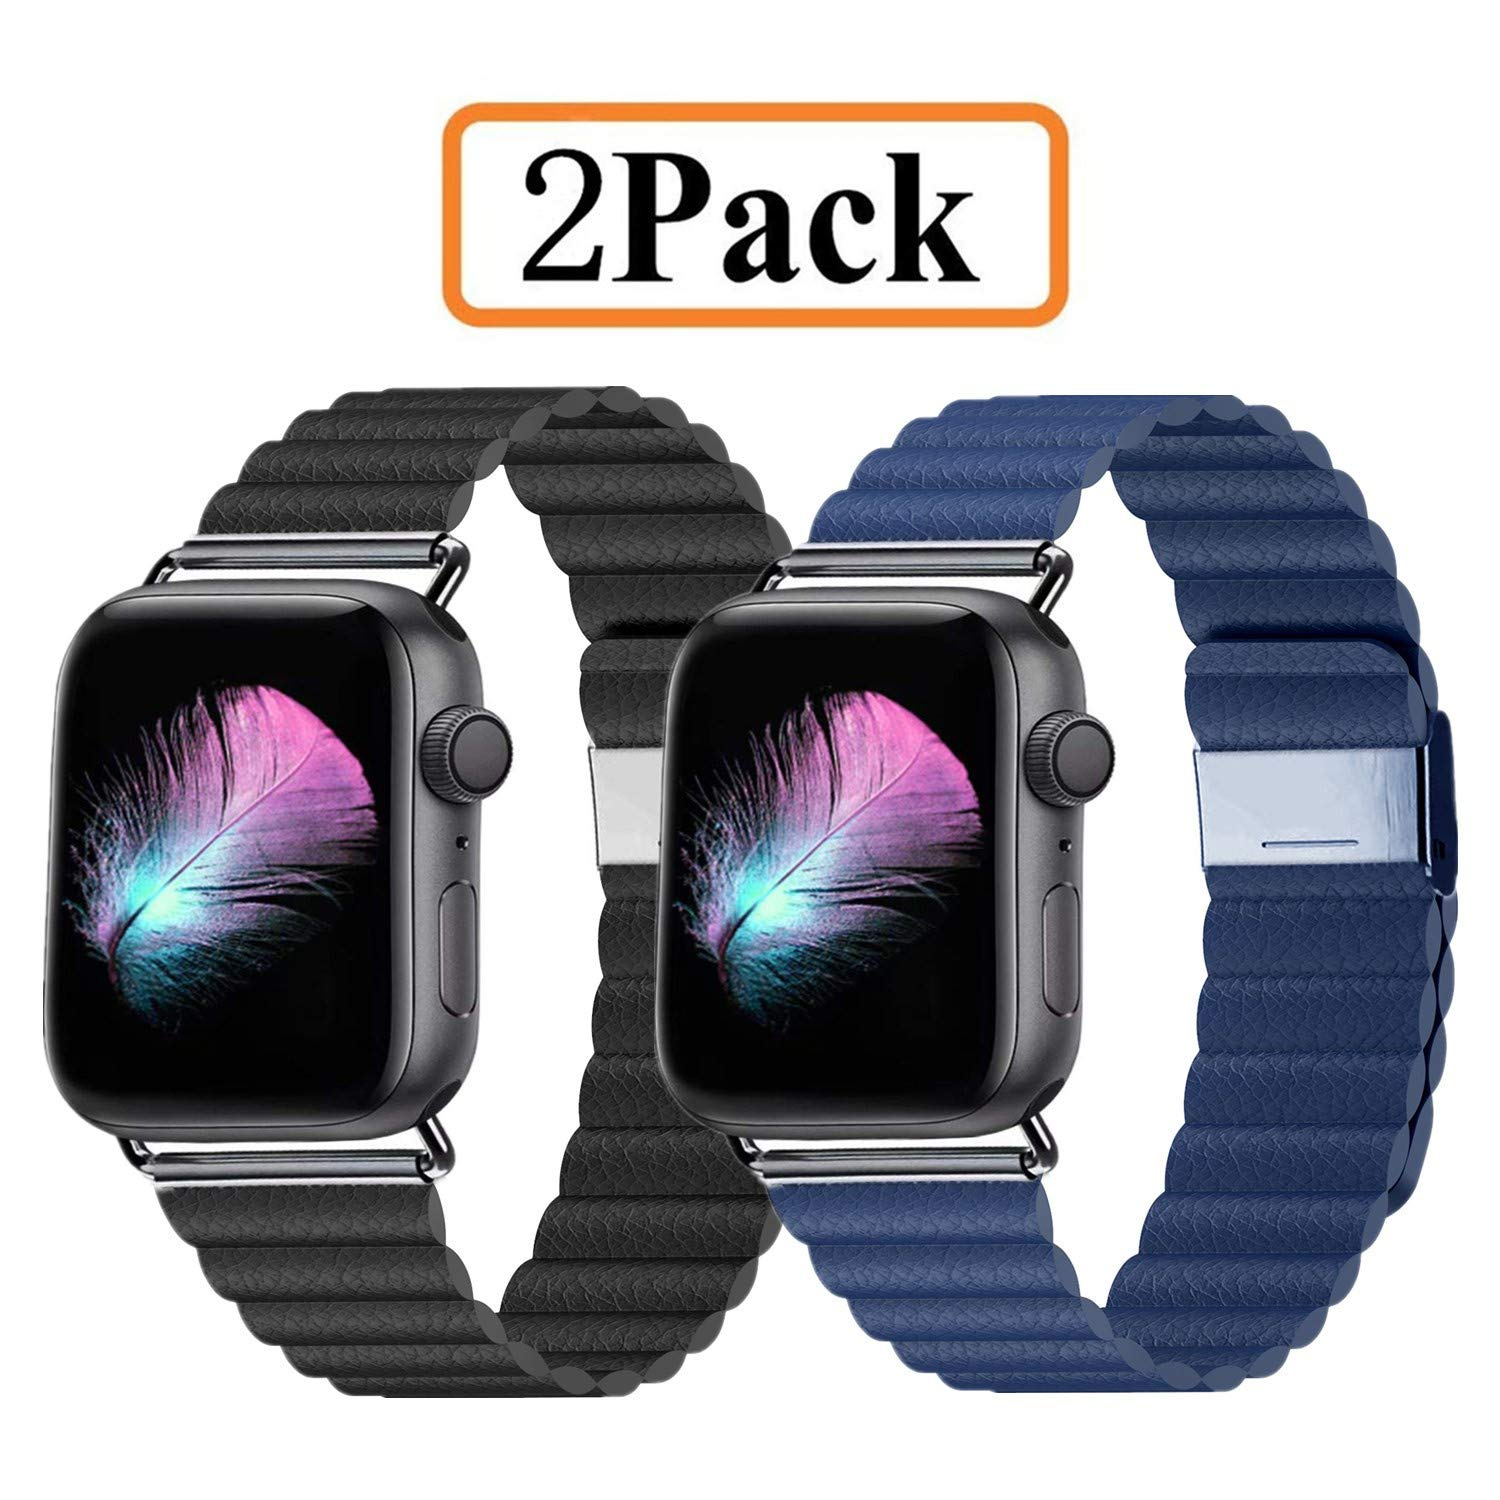 LKEITY Compatible for Apple Watch Band 44mm 42mm - Upgrade Adjustable Leather Strap with Strong Magnetic for iWatch Series 4/3/2/1 (Black/Blue 2 Pack)